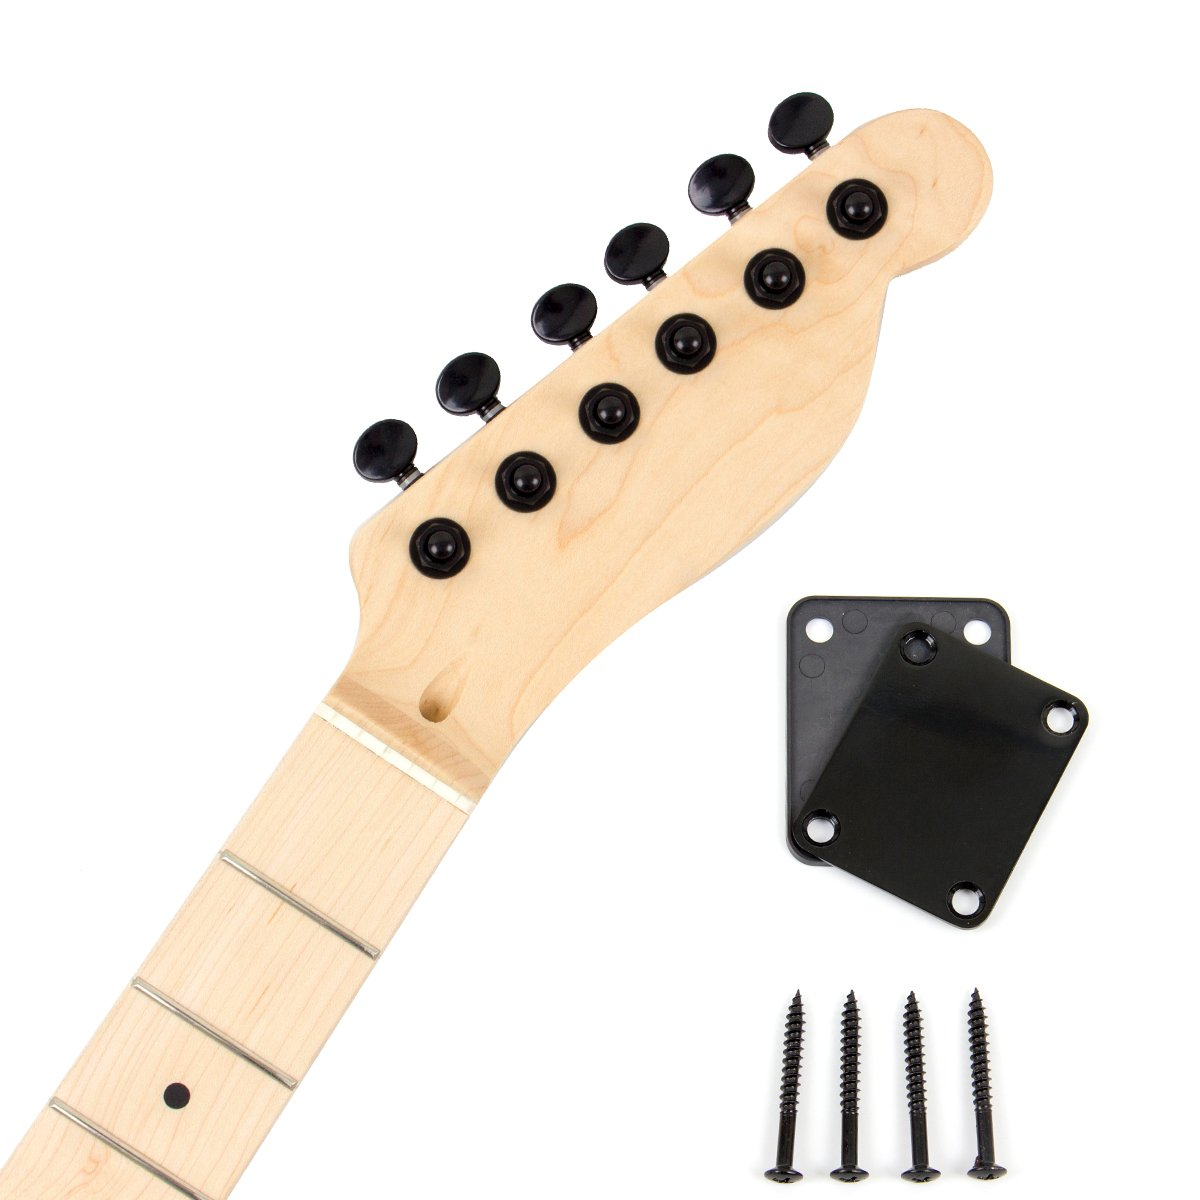 Electric Guitar Neck With Black 6R Inline Sealed Tuning Pegs Neck Plate Maple Wood Neck Machine Heads Parts Replacement